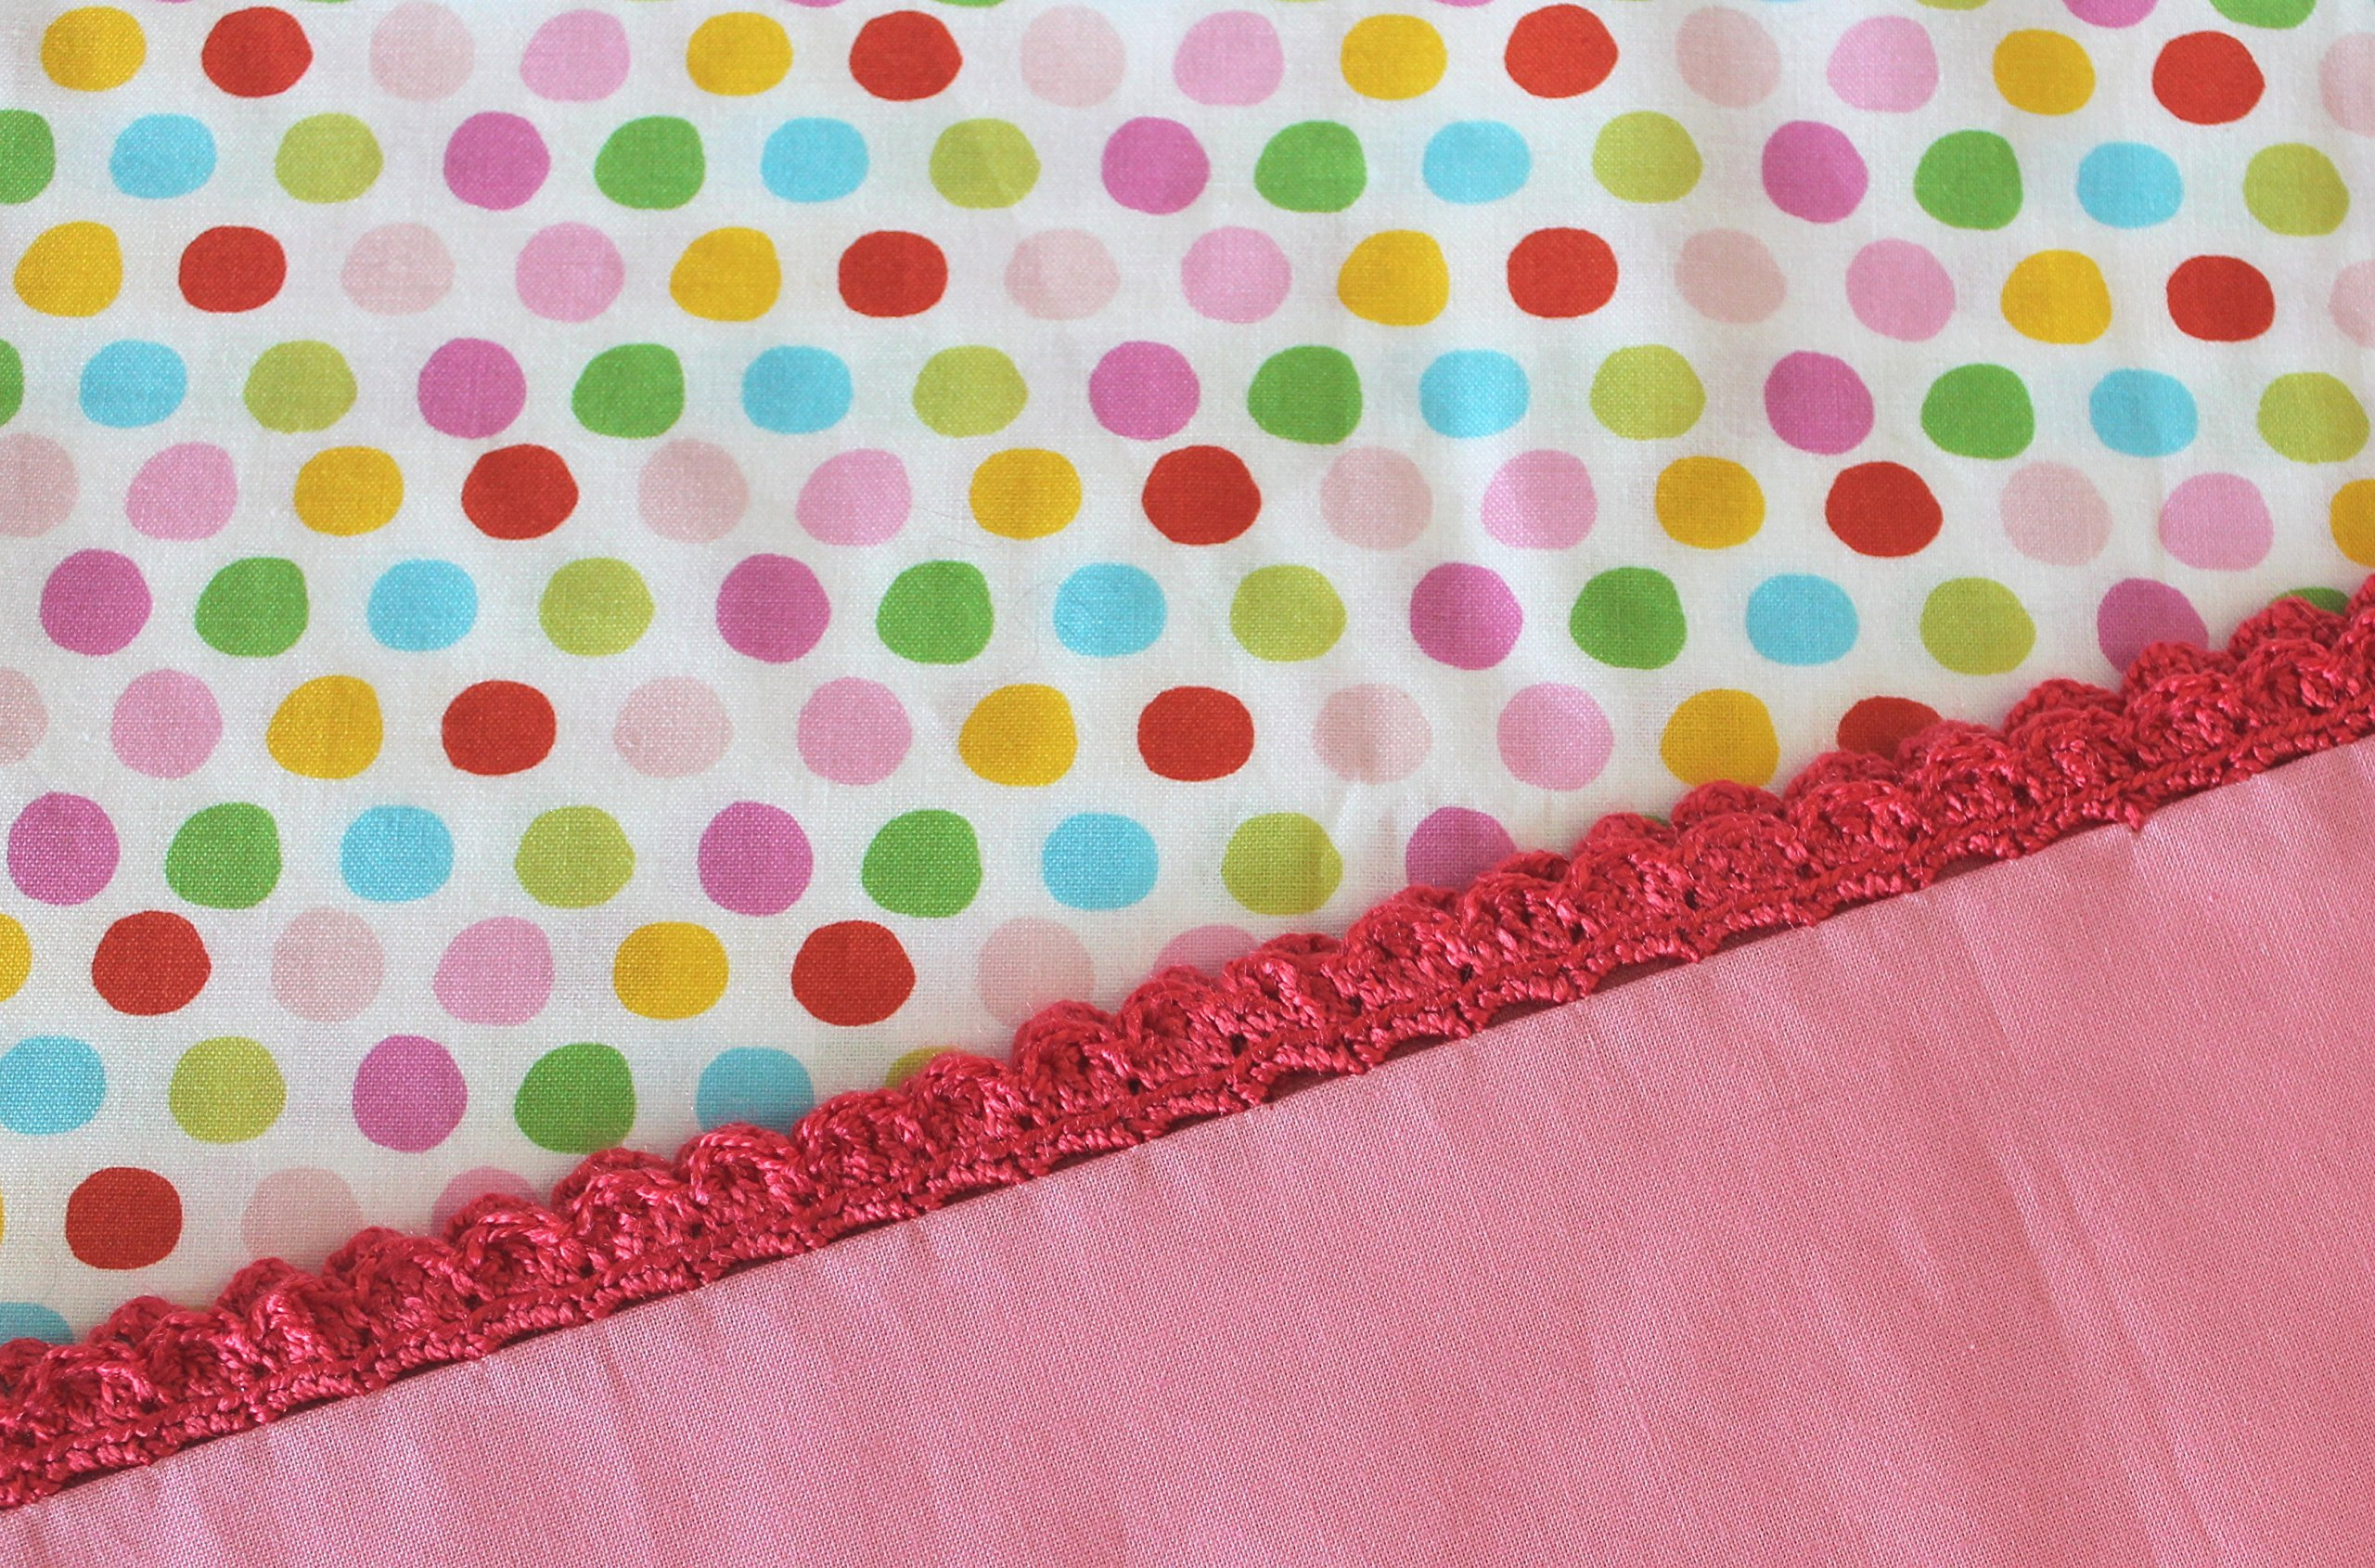 Standard Pillowcase With Crocheted Edge Pink Red Yellow Green Aqua Polka Dots with a pink hem and pretty red crocheted edging. Handmade with Love and Ready to Ship.